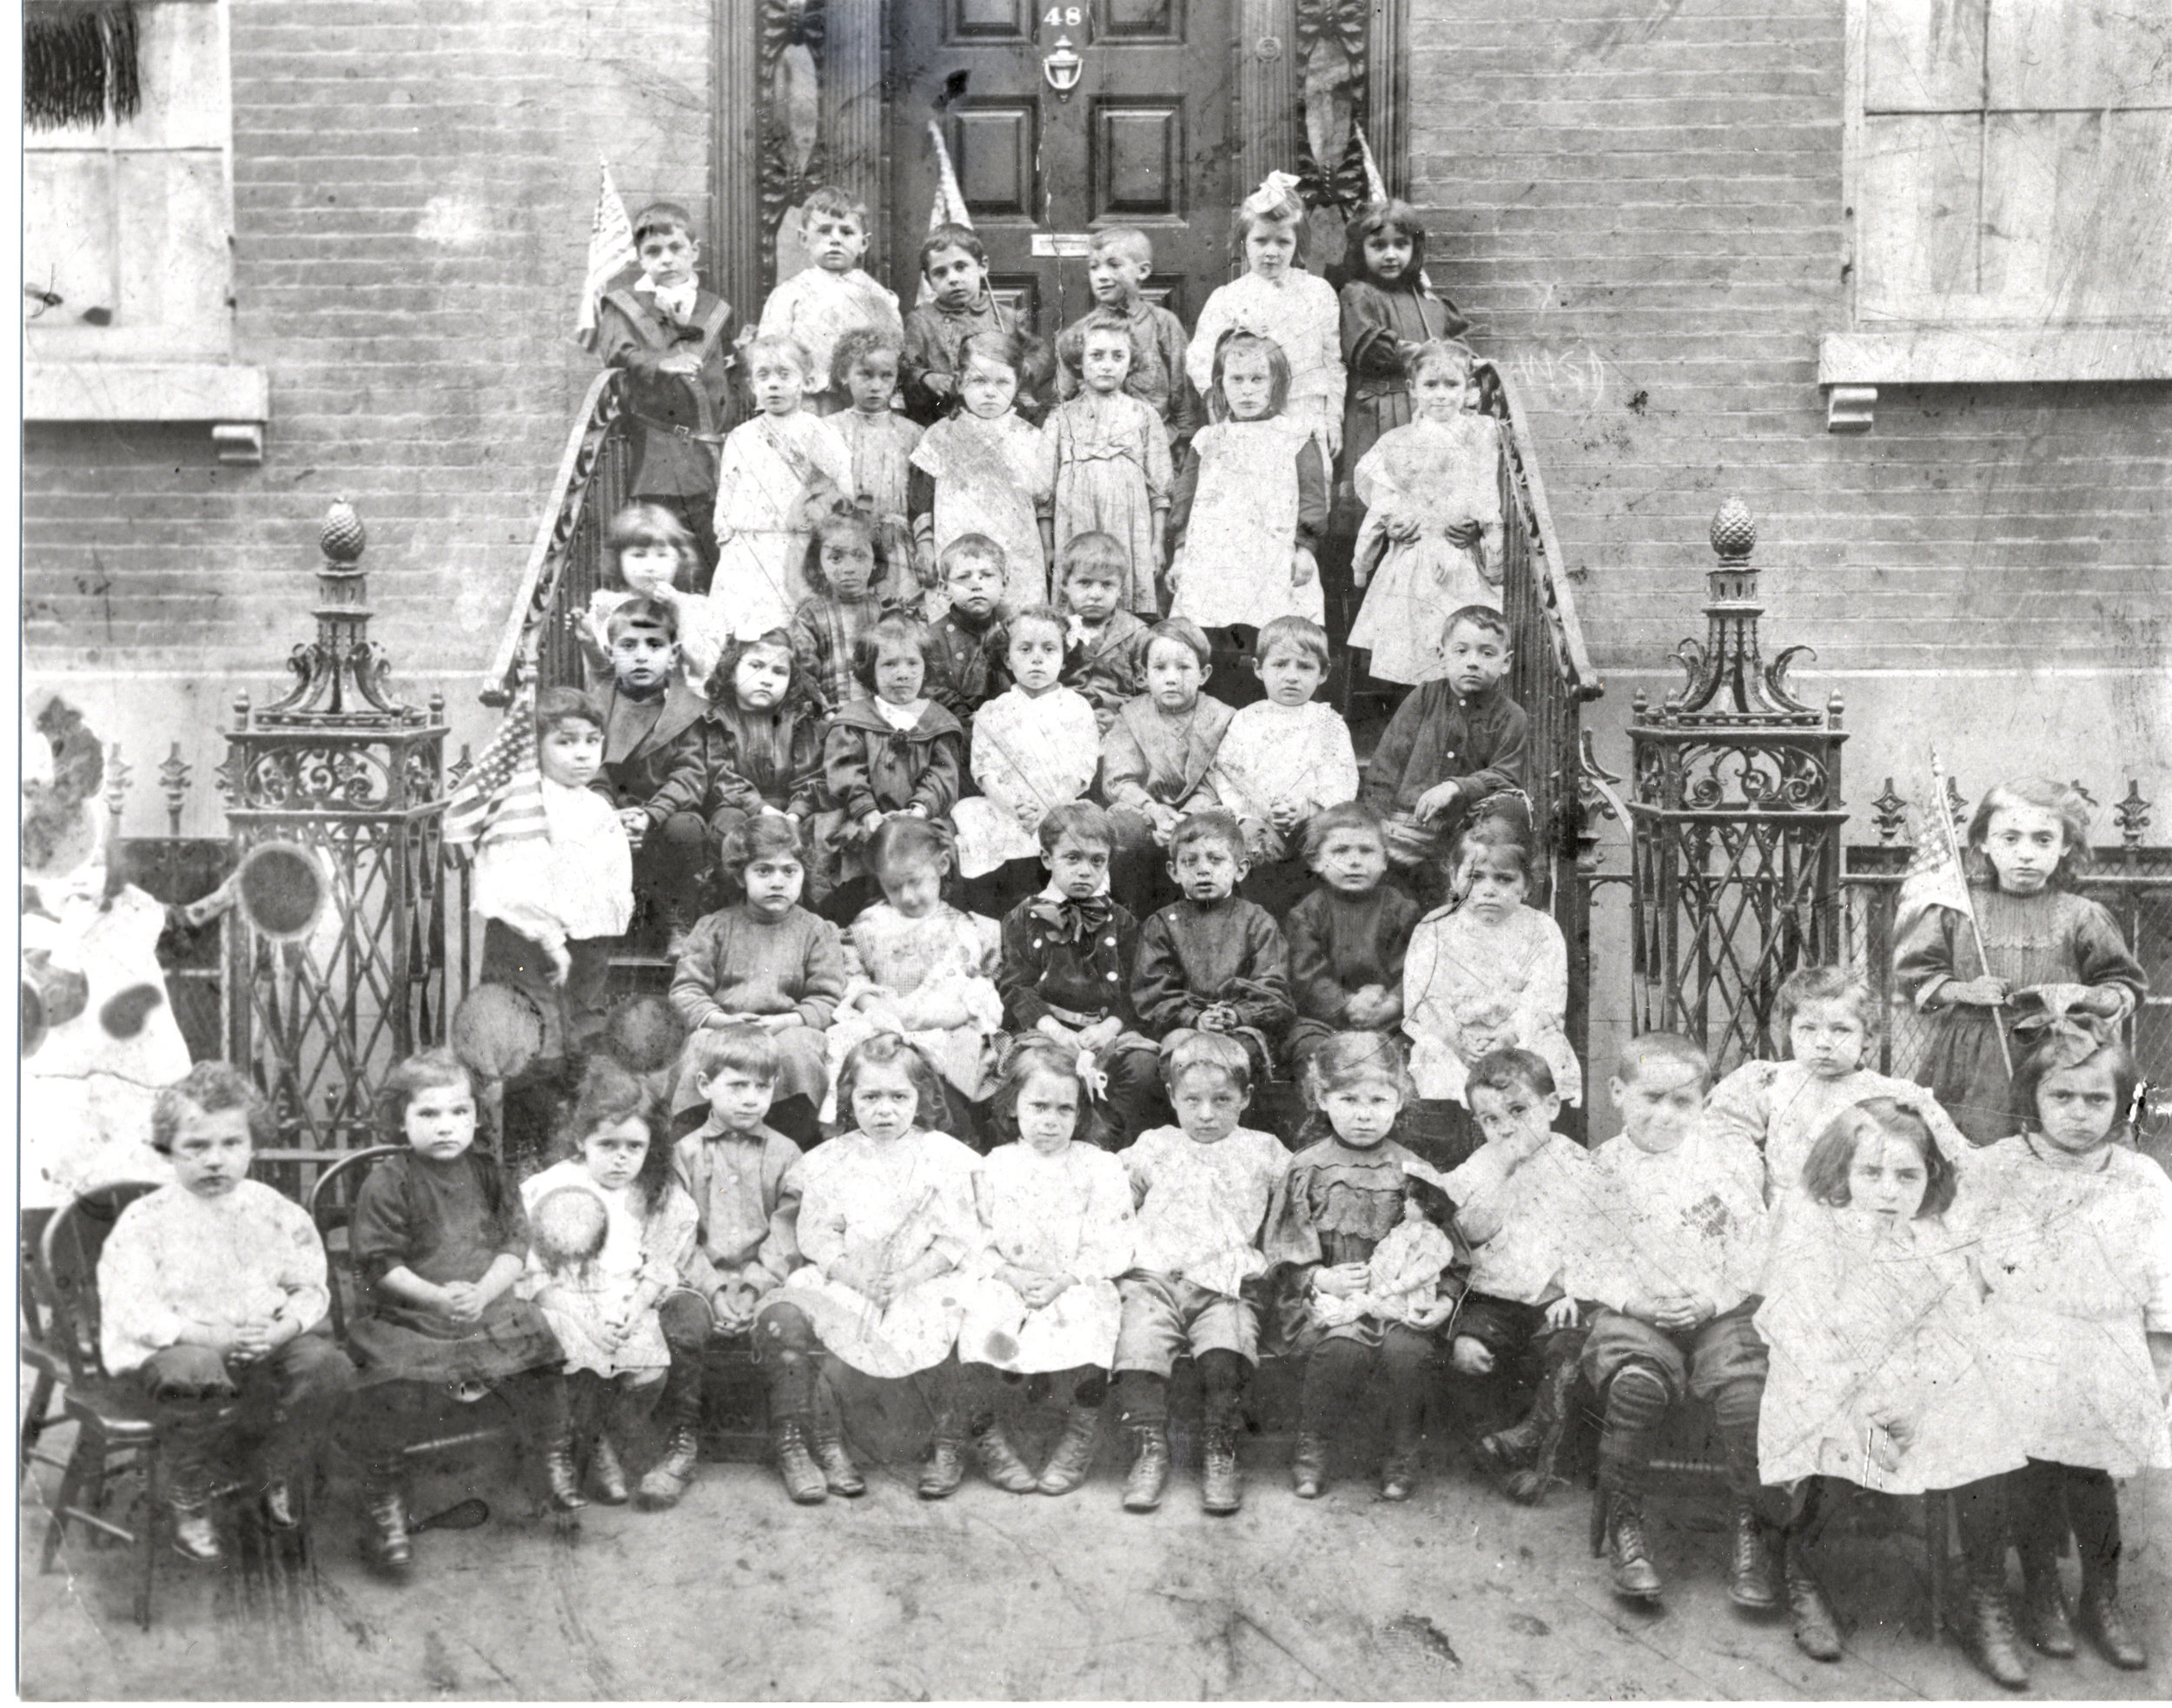 Sol Napolsky at the Henry Street Settlement House kindergarten, 3rd row, right, leaning against bannister.